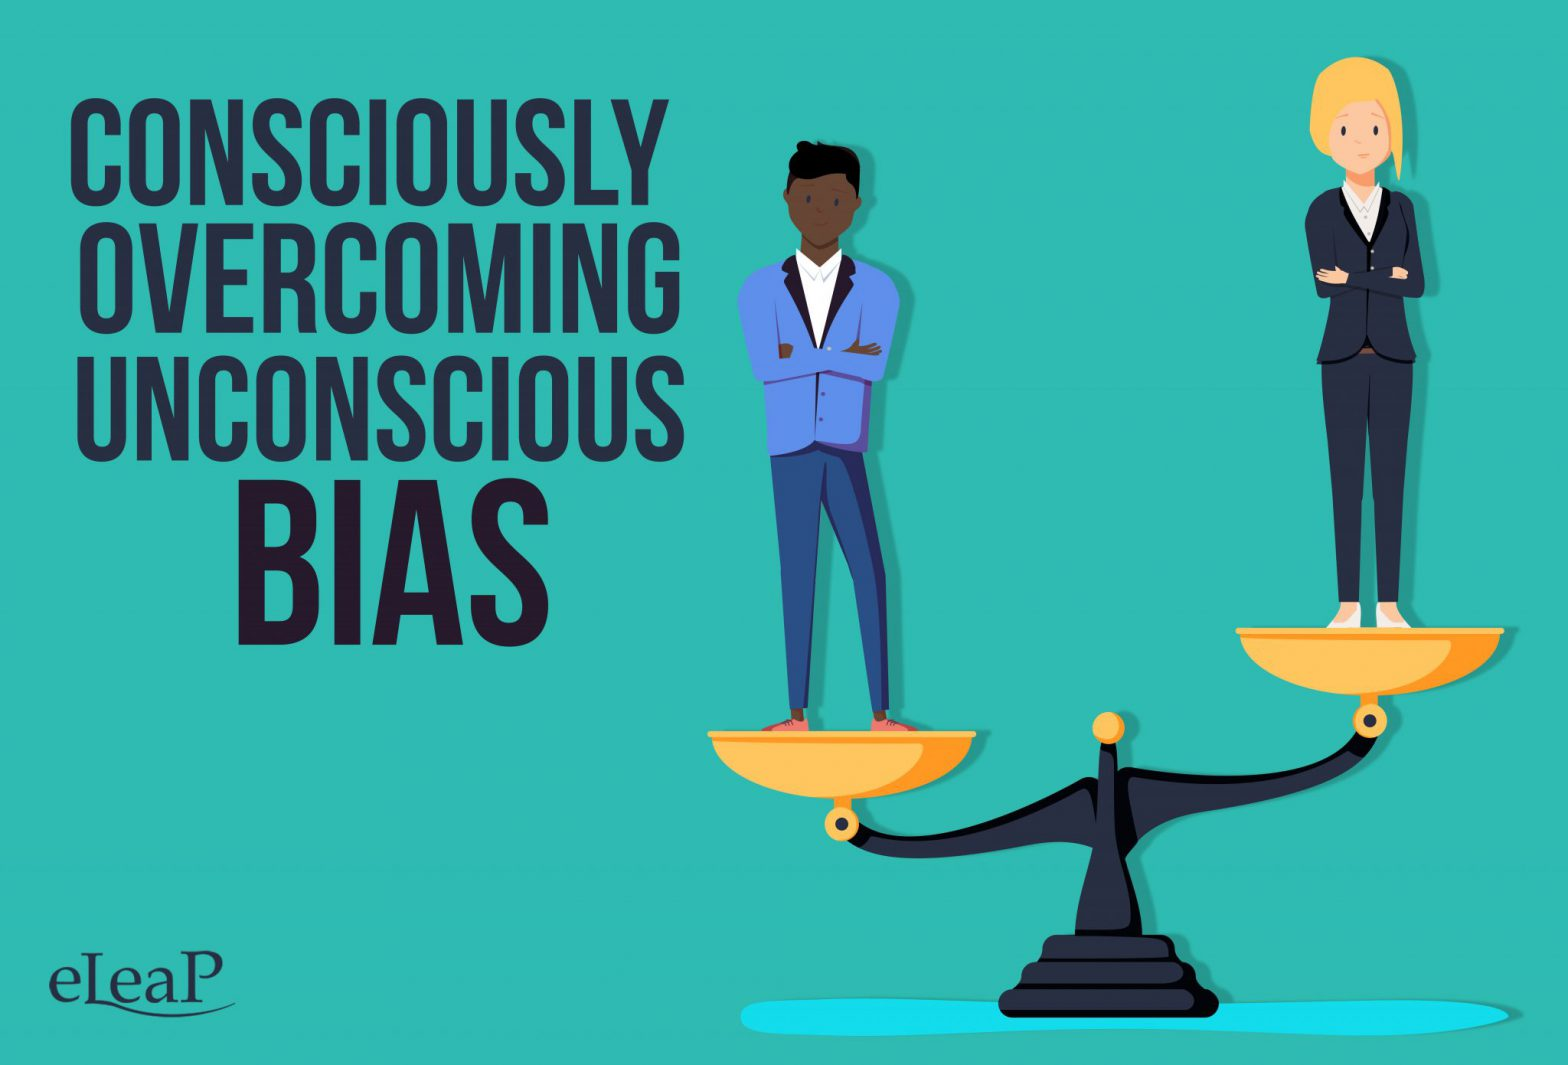 Consciously Overcoming Unconscious Bias